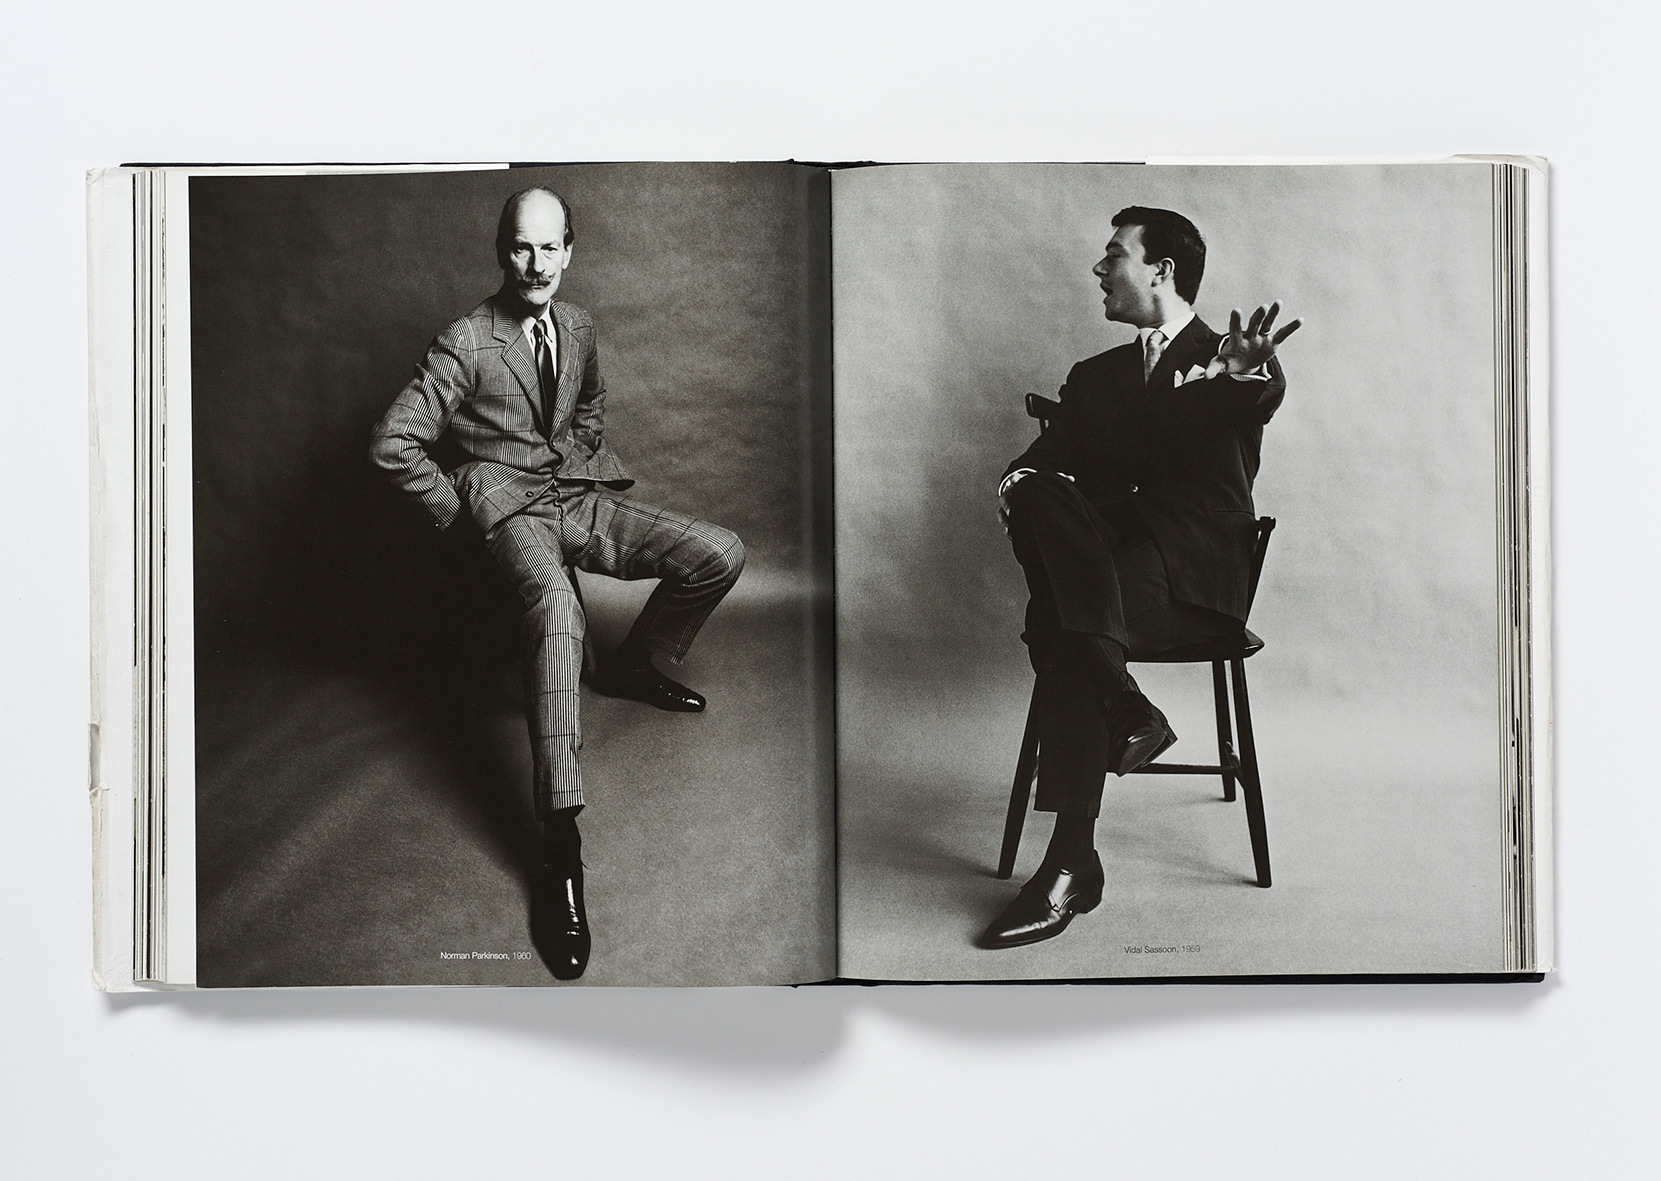 Terence Donovan: The Photographs